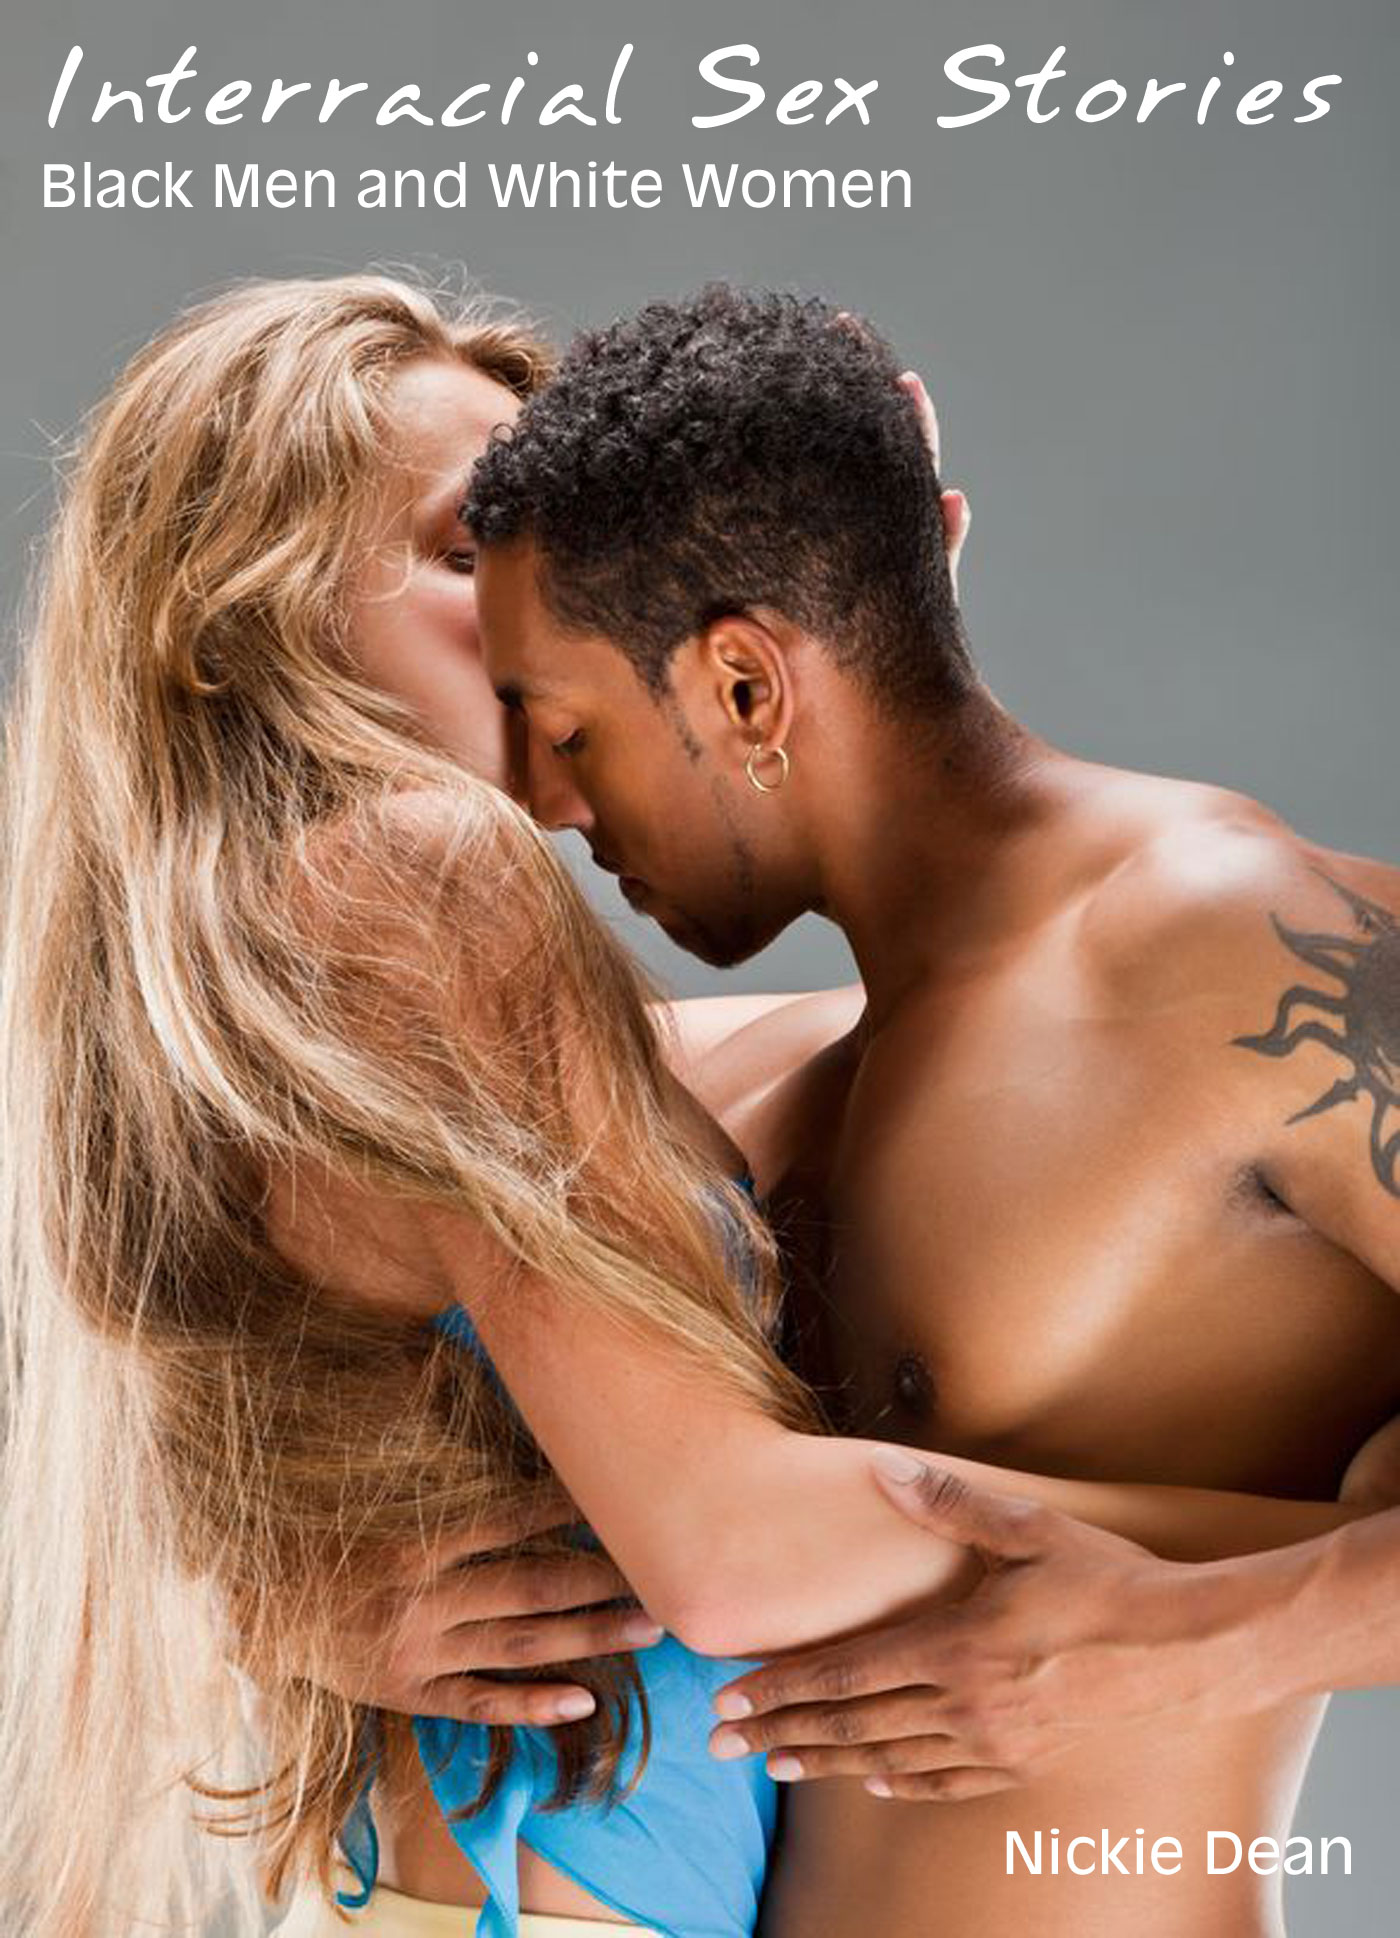 sex between black men and white women